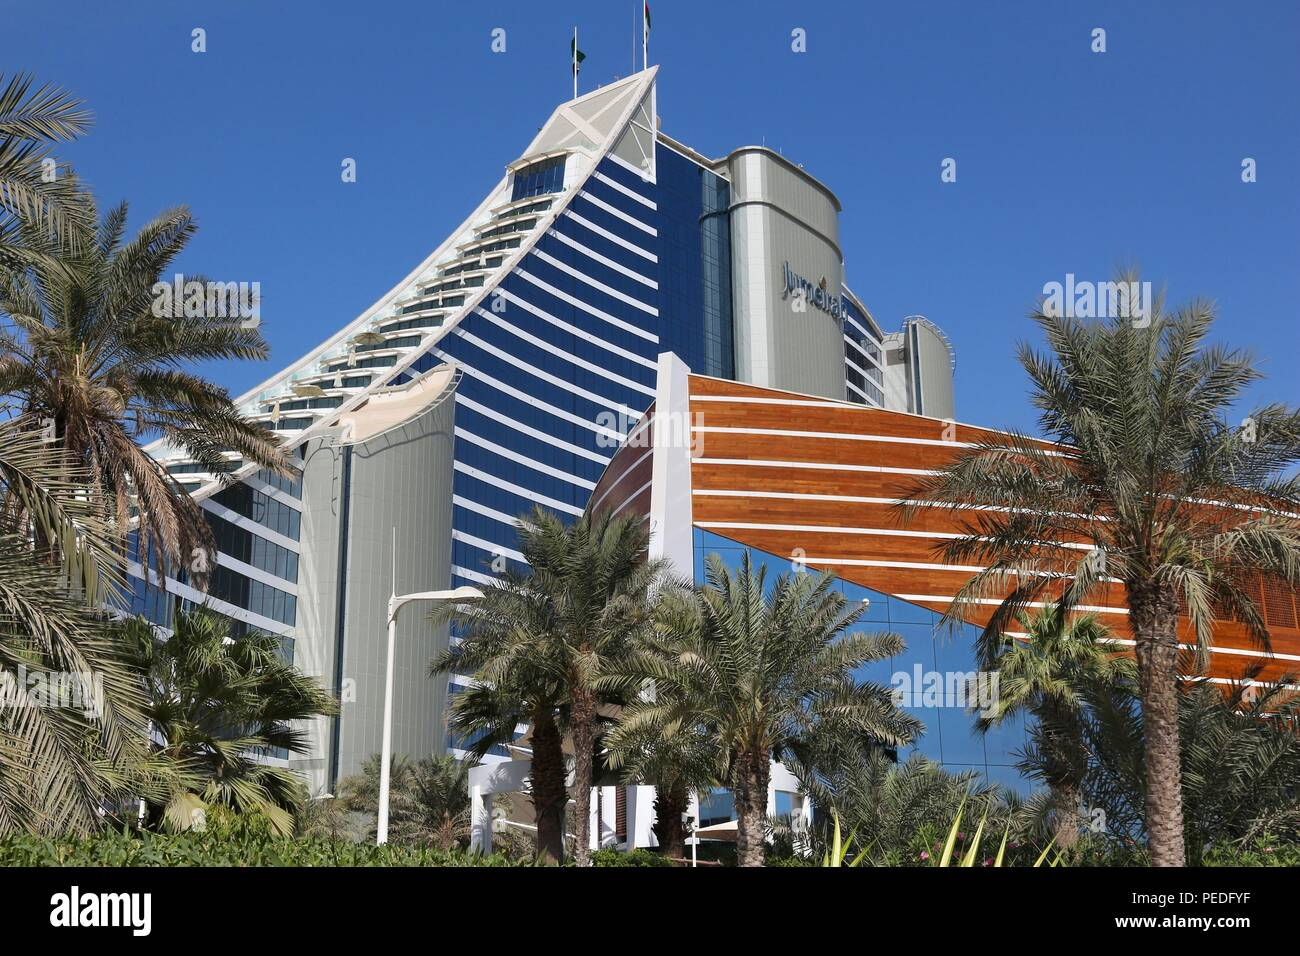 DUBAI, UAE - NOVEMBER 23, 2017: Jumeirah Beach Hotel in Dubai. The hotel was designed by British company WS Atkins. It is operated by Jumeirah Group. Stock Photo